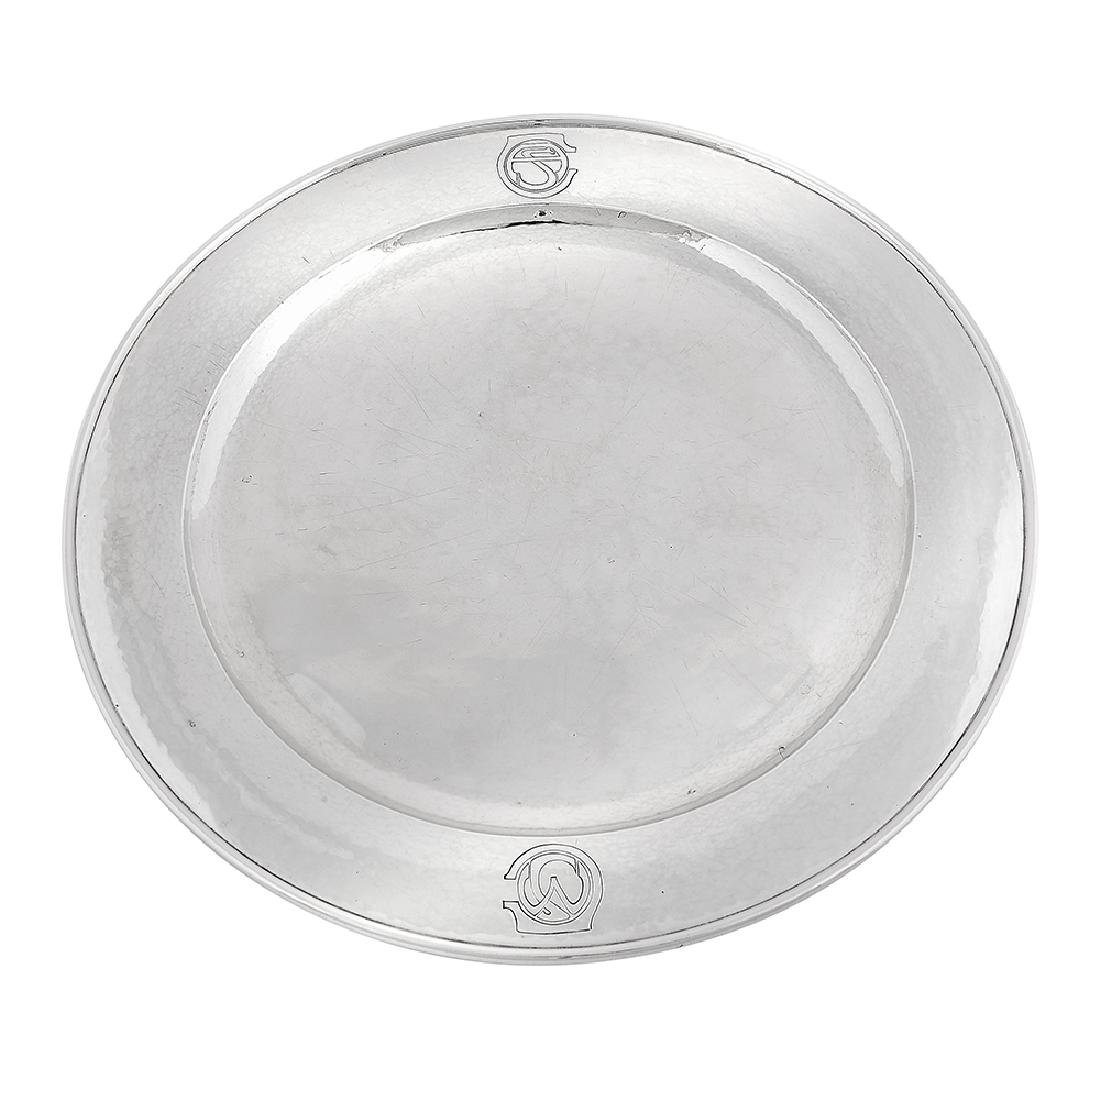 The Kalo Shop round cake plate